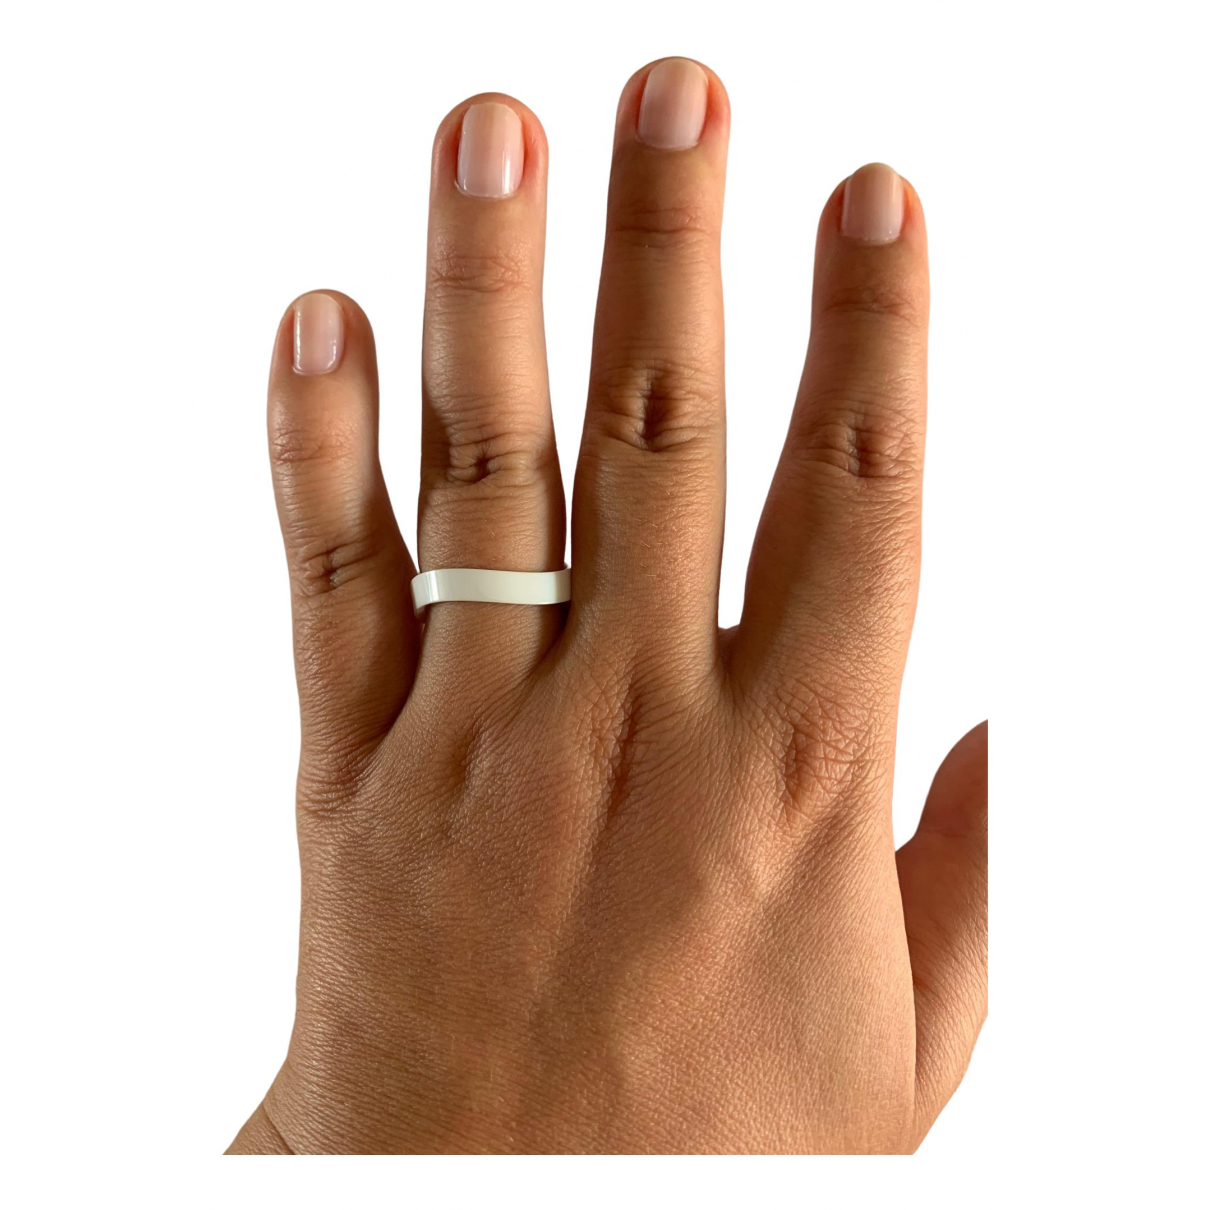 Omega \N White Ceramic ring for Women 60 MM